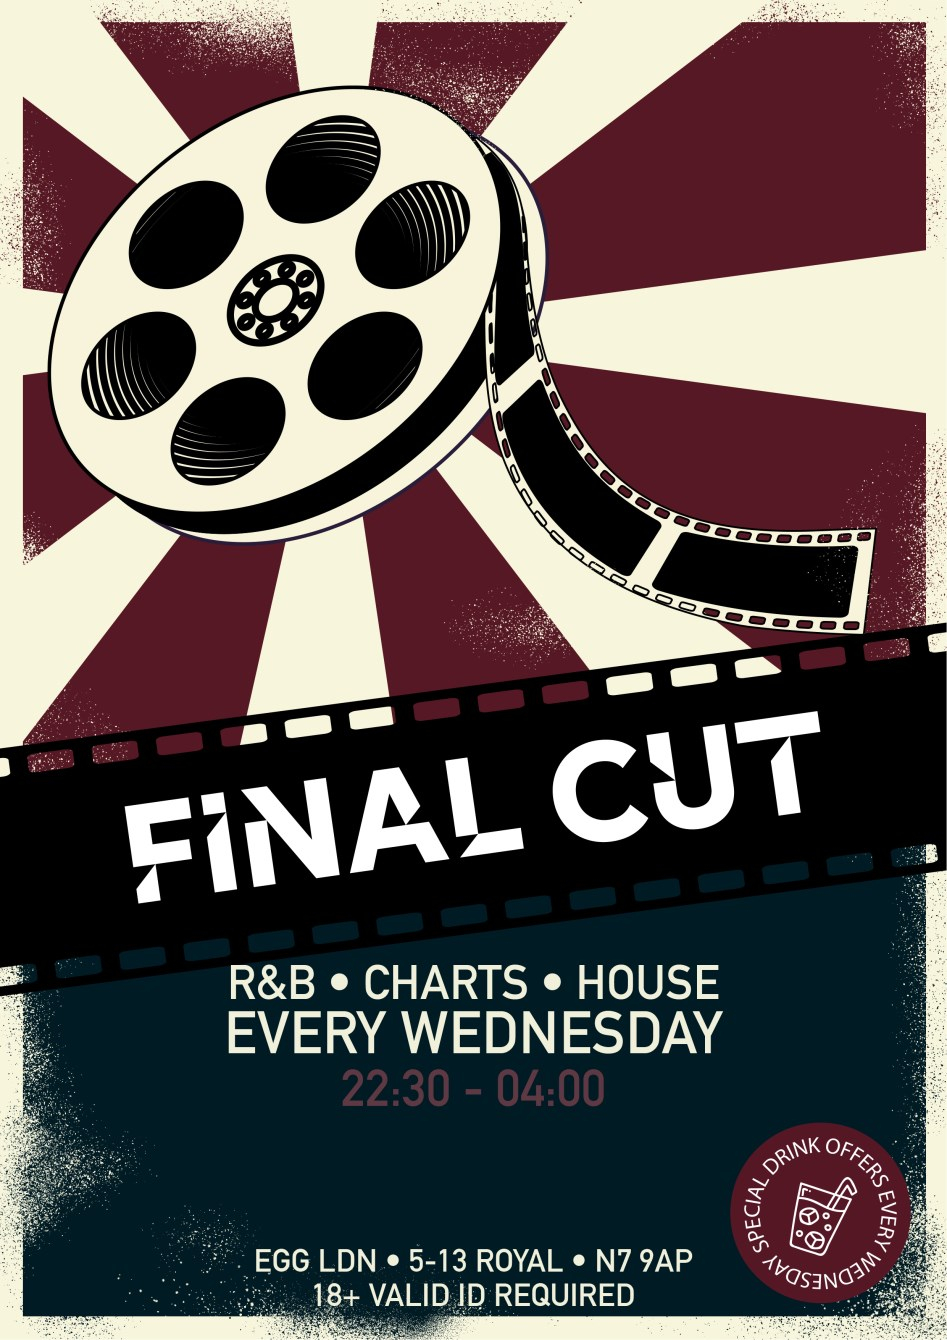 Final CUT: R&B, Charts, House and More - Flyer front